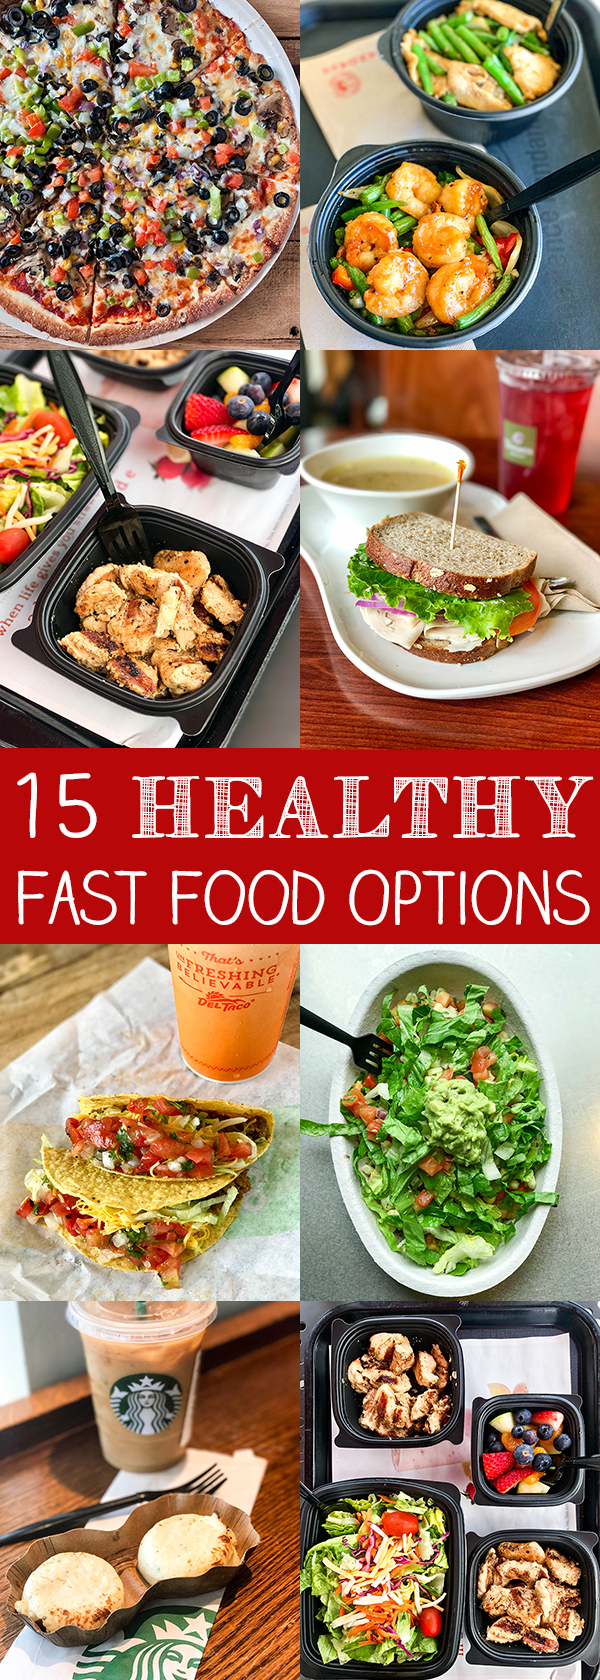 15 Healthy Fast Food Options for making better choices on the go!